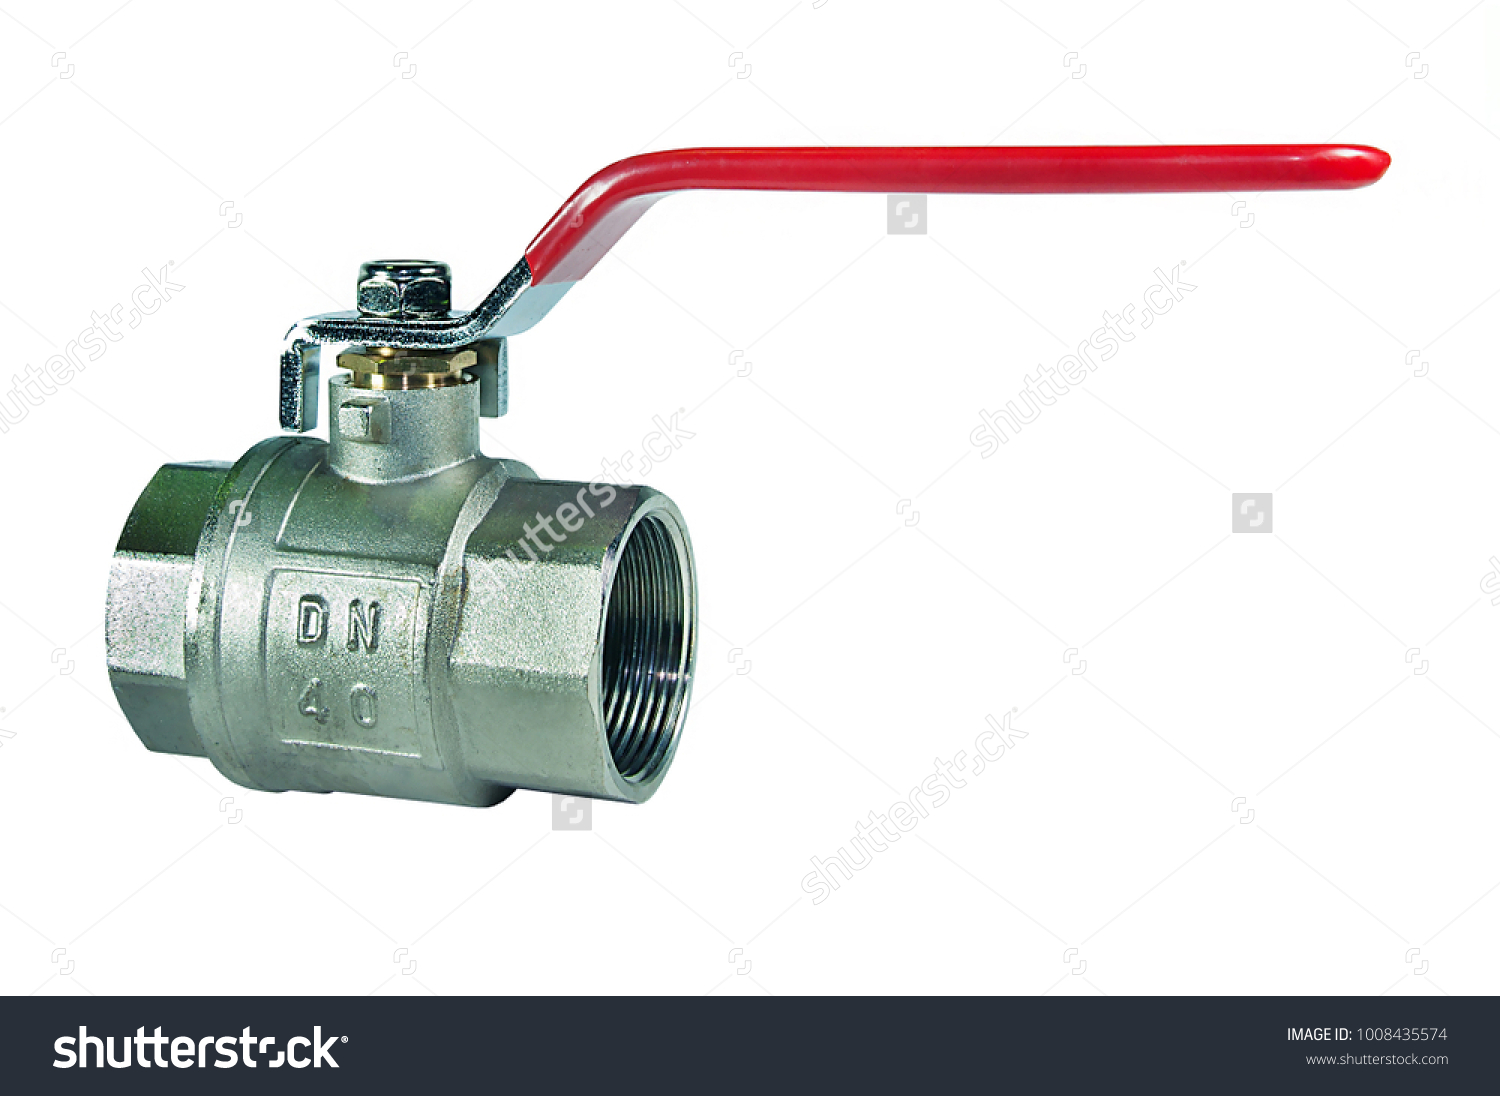 Industrial Stainless Steel Ball Valve Water Stock Photo (Royalty ...